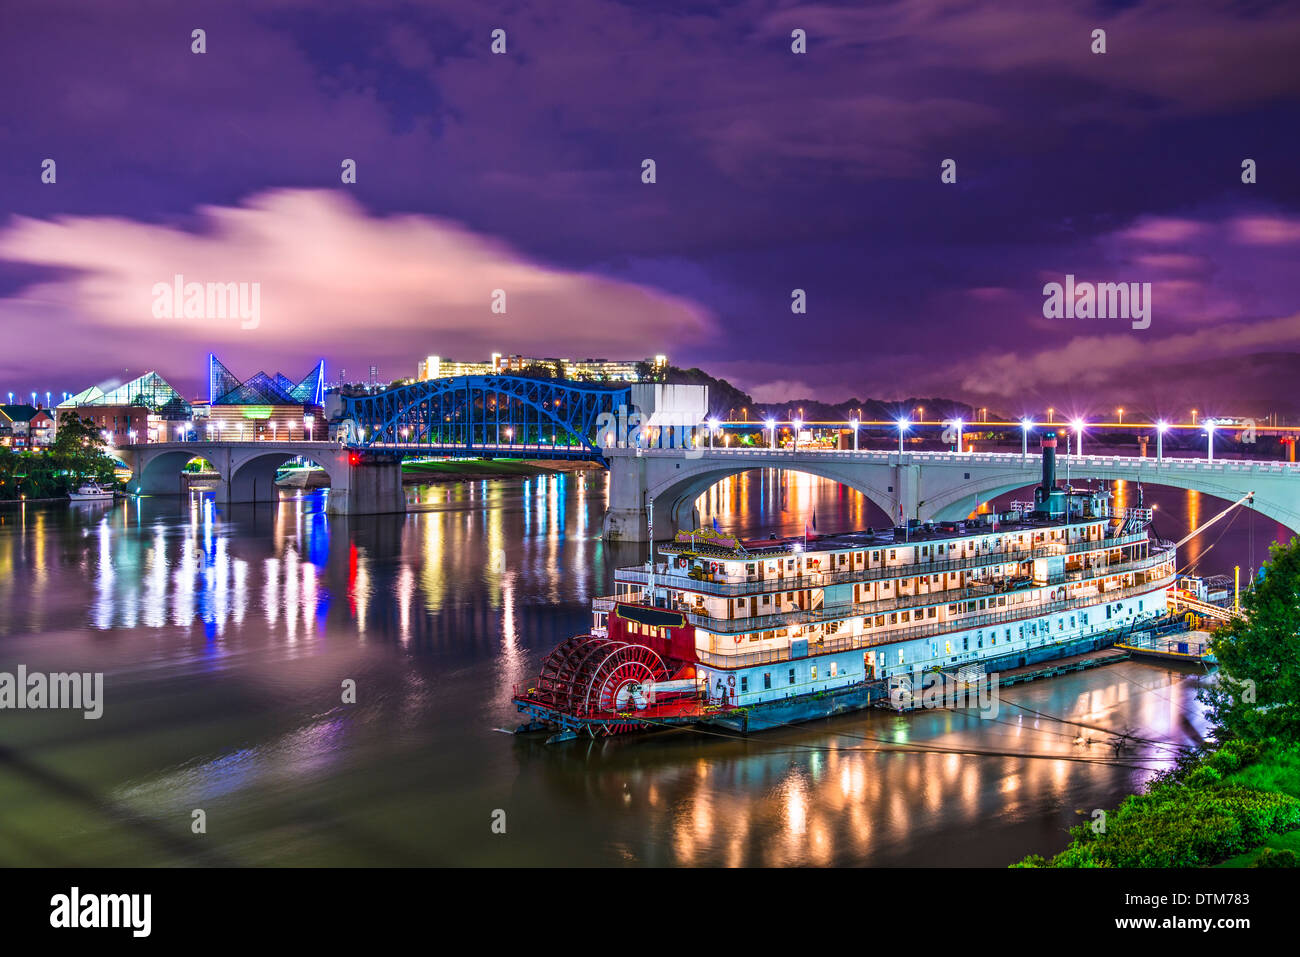 Chattanooga, Tennessee, USA downtown over the Tennessee River. - Stock Image